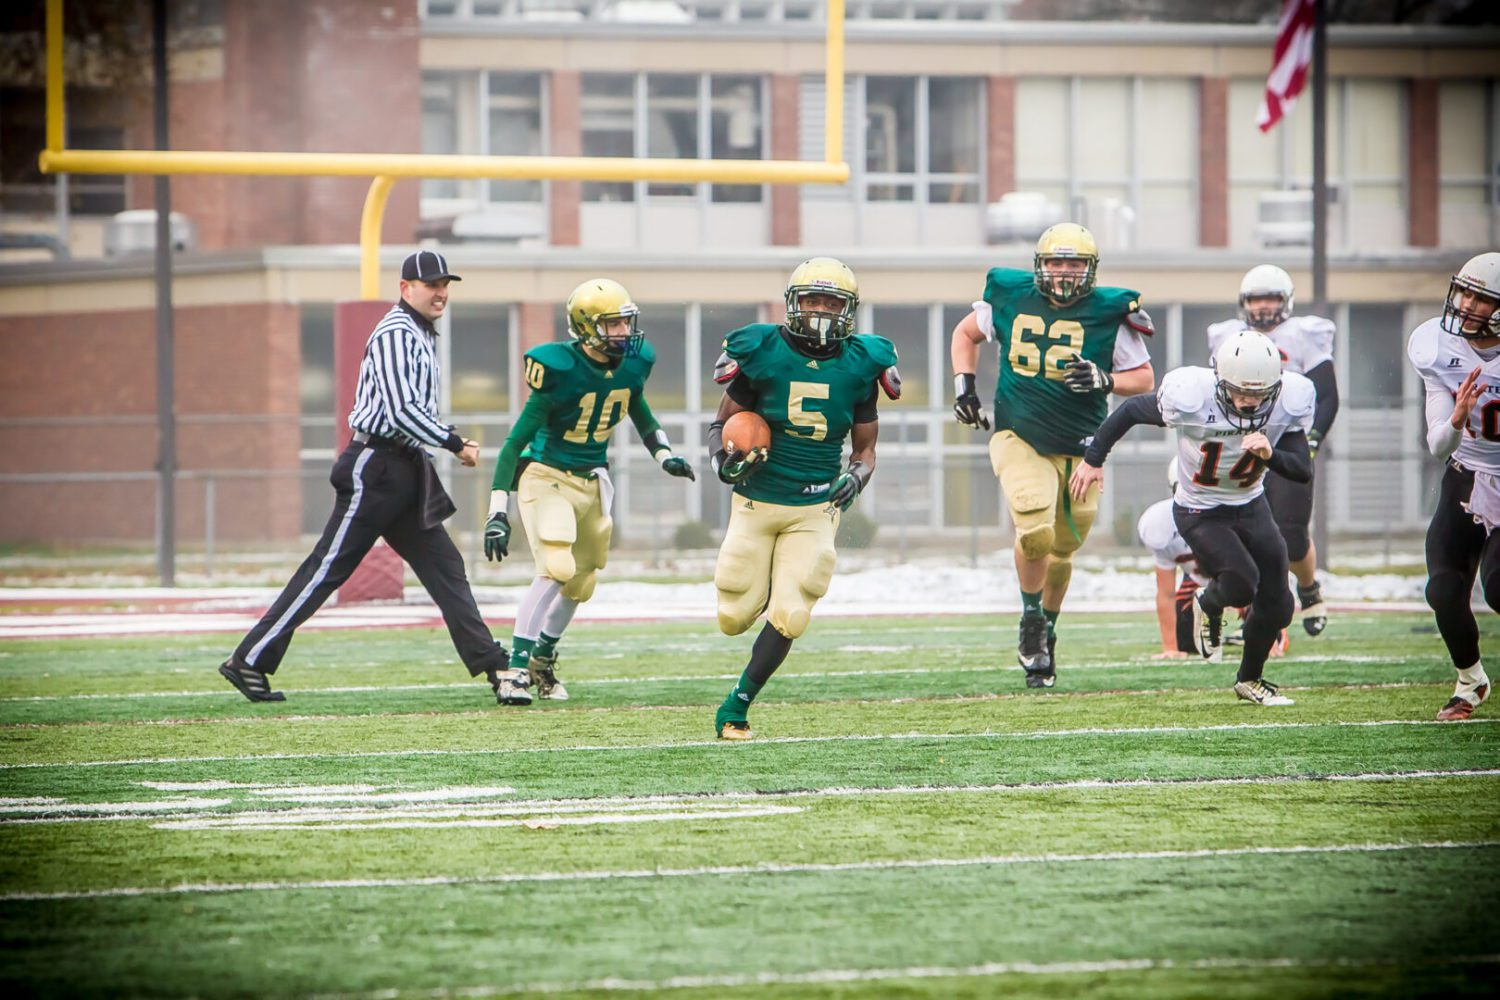 Division 8 football state final preview: Dominant MCC ready to defend its crown against a strong Munising squad